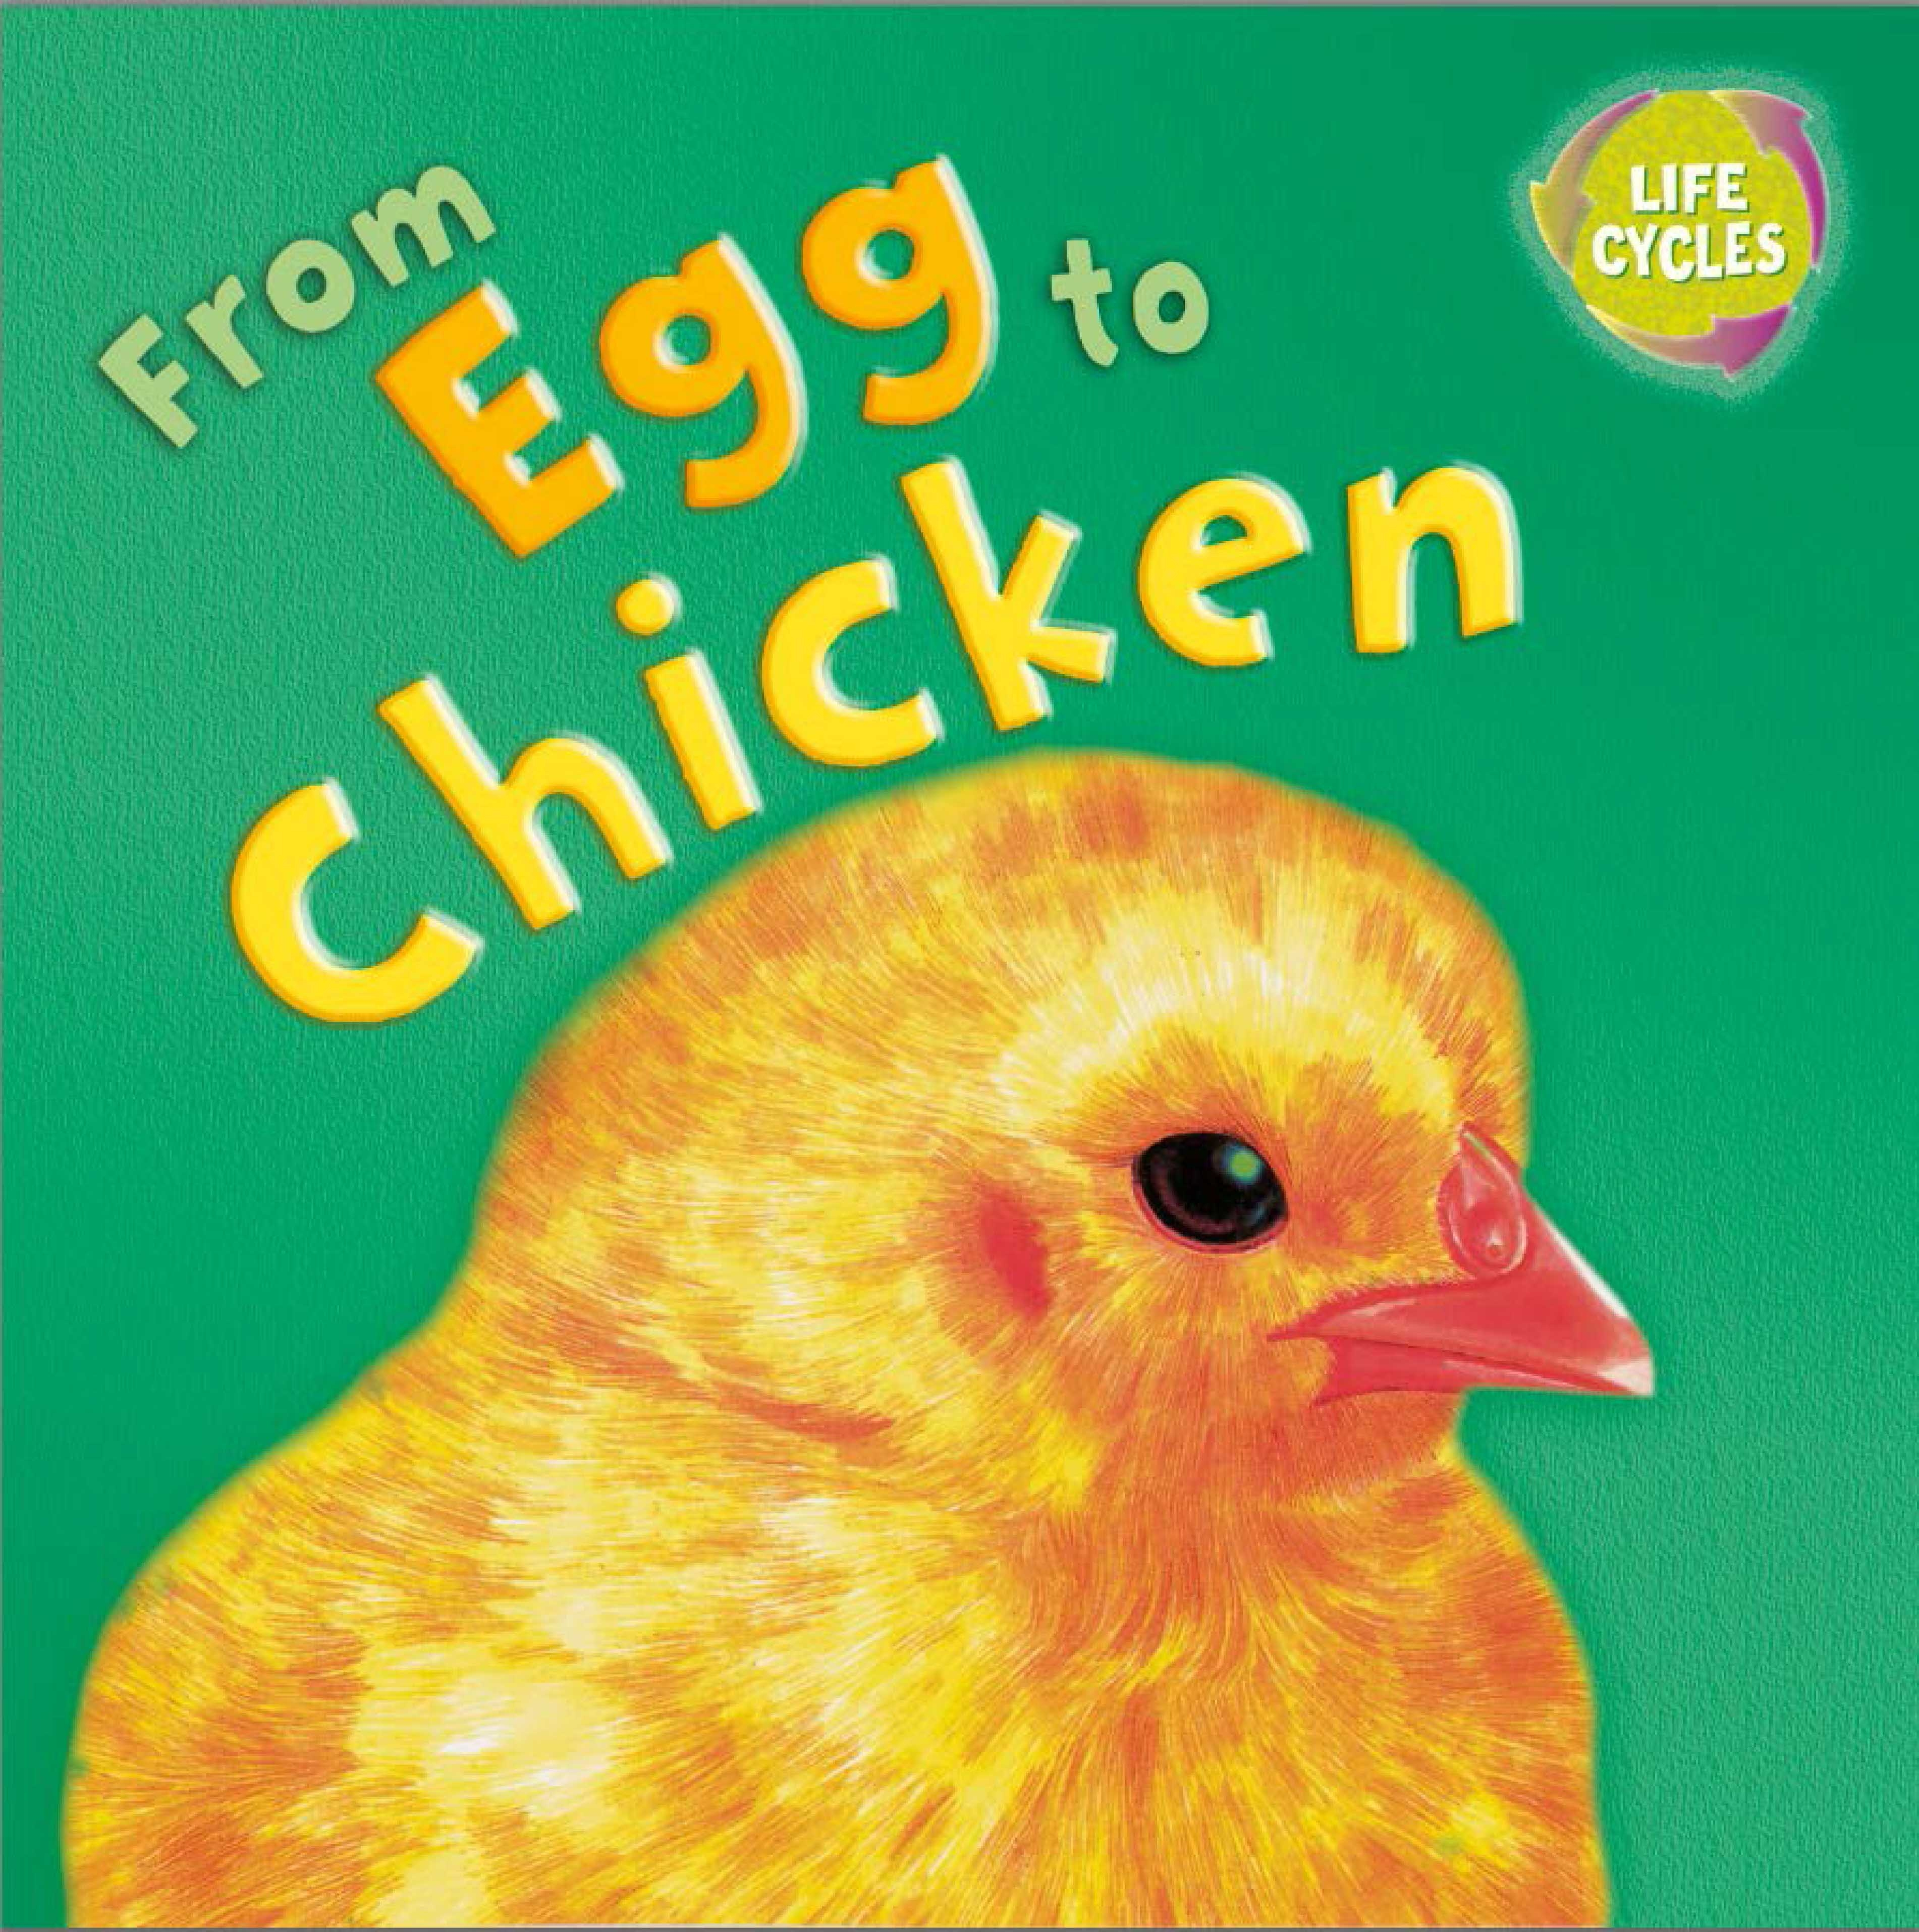 Lifecycles: From Egg To Chicken by Gerald Legg   Hachette Childrens UK